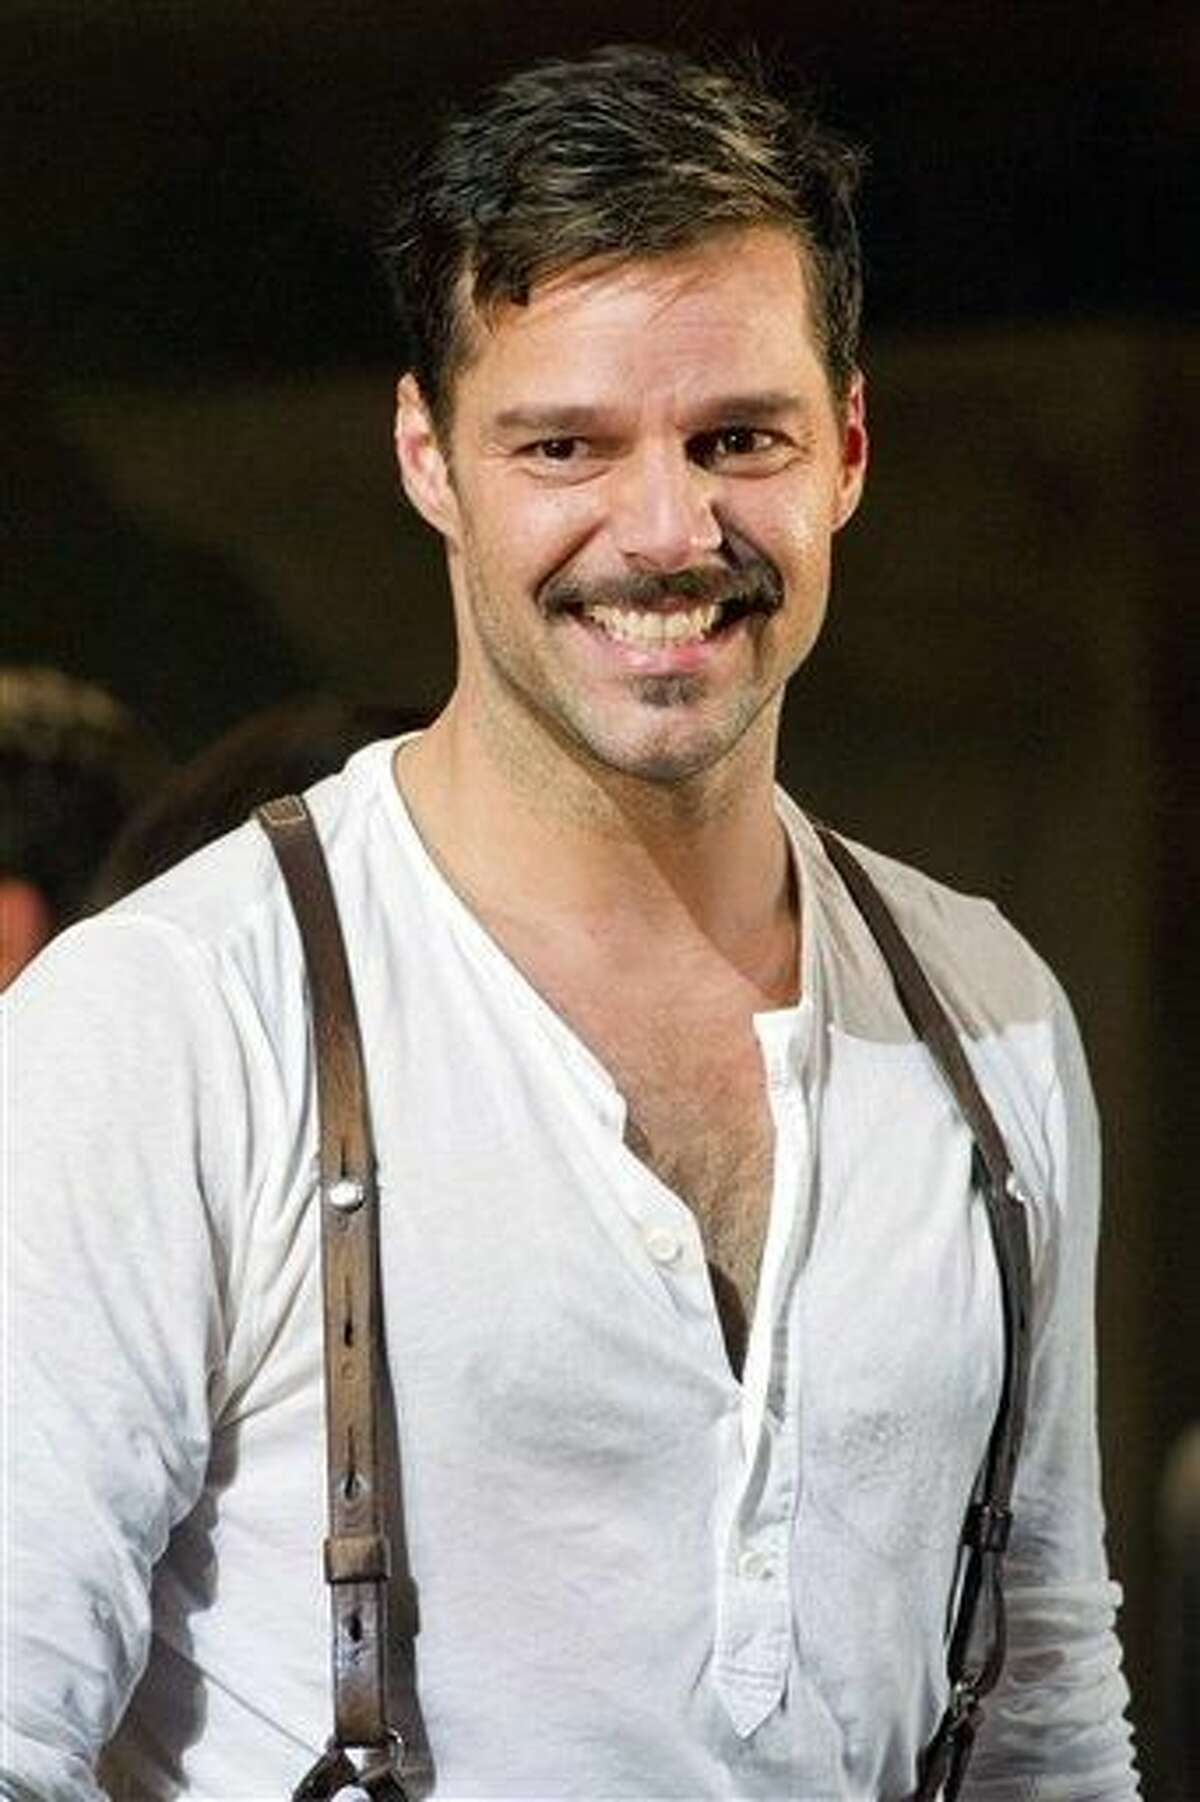 In this Monday, March 12, 2012 photo, Ricky Martin appears at the curtain call after his first performance in the new Broadway production of